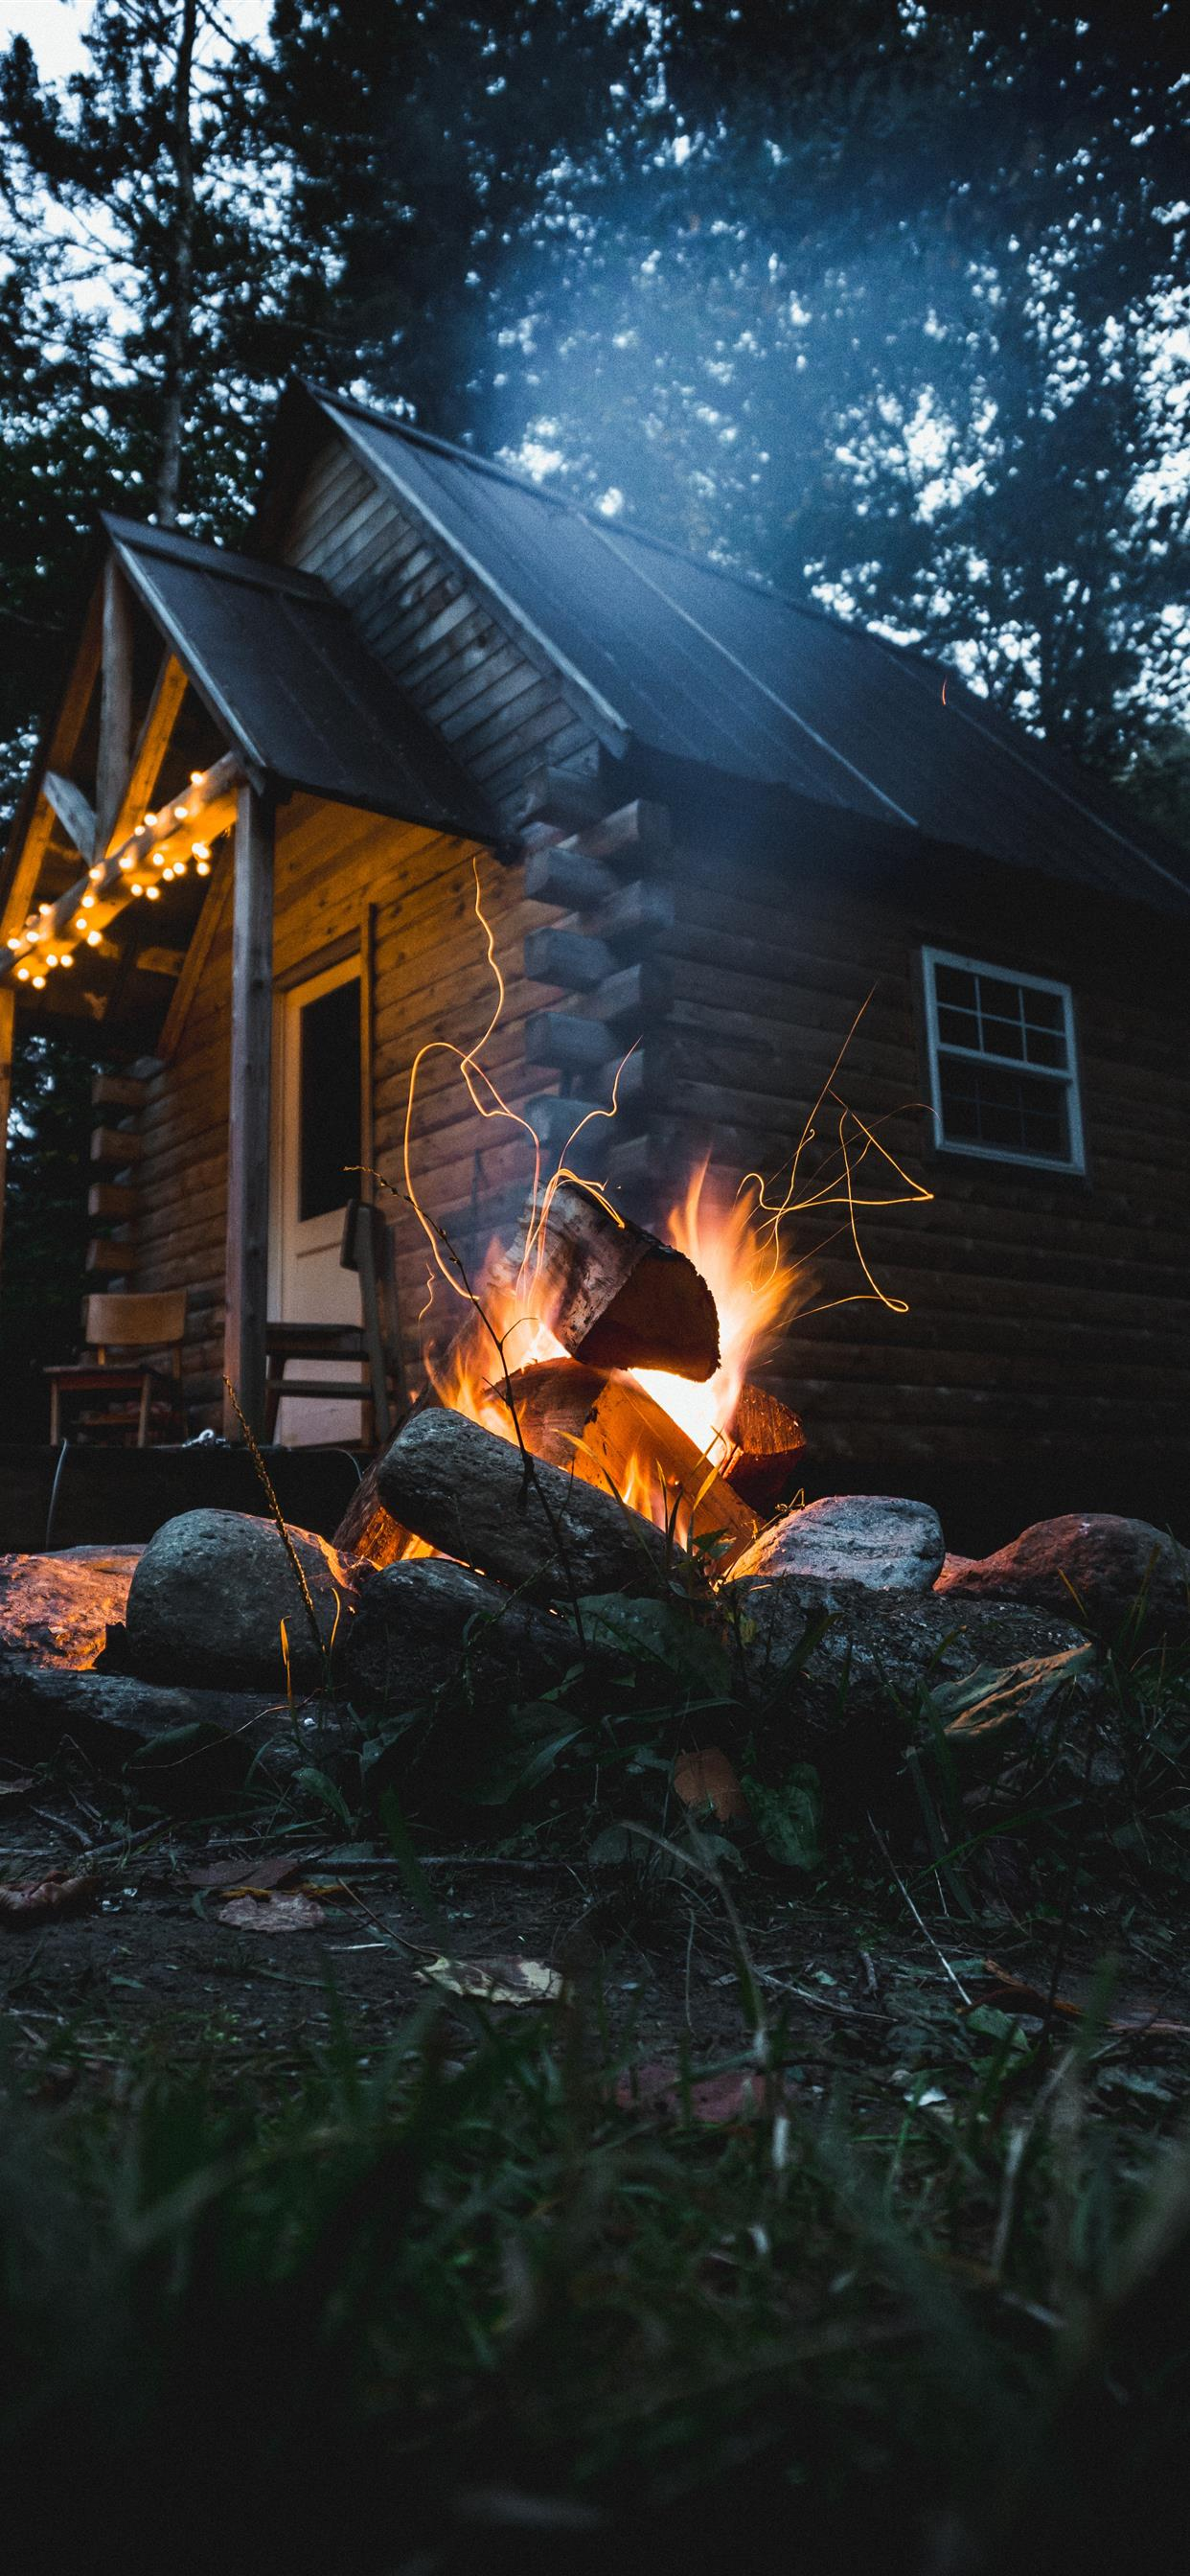 Cabin In The Woods Iphone Wallpapers Free Download